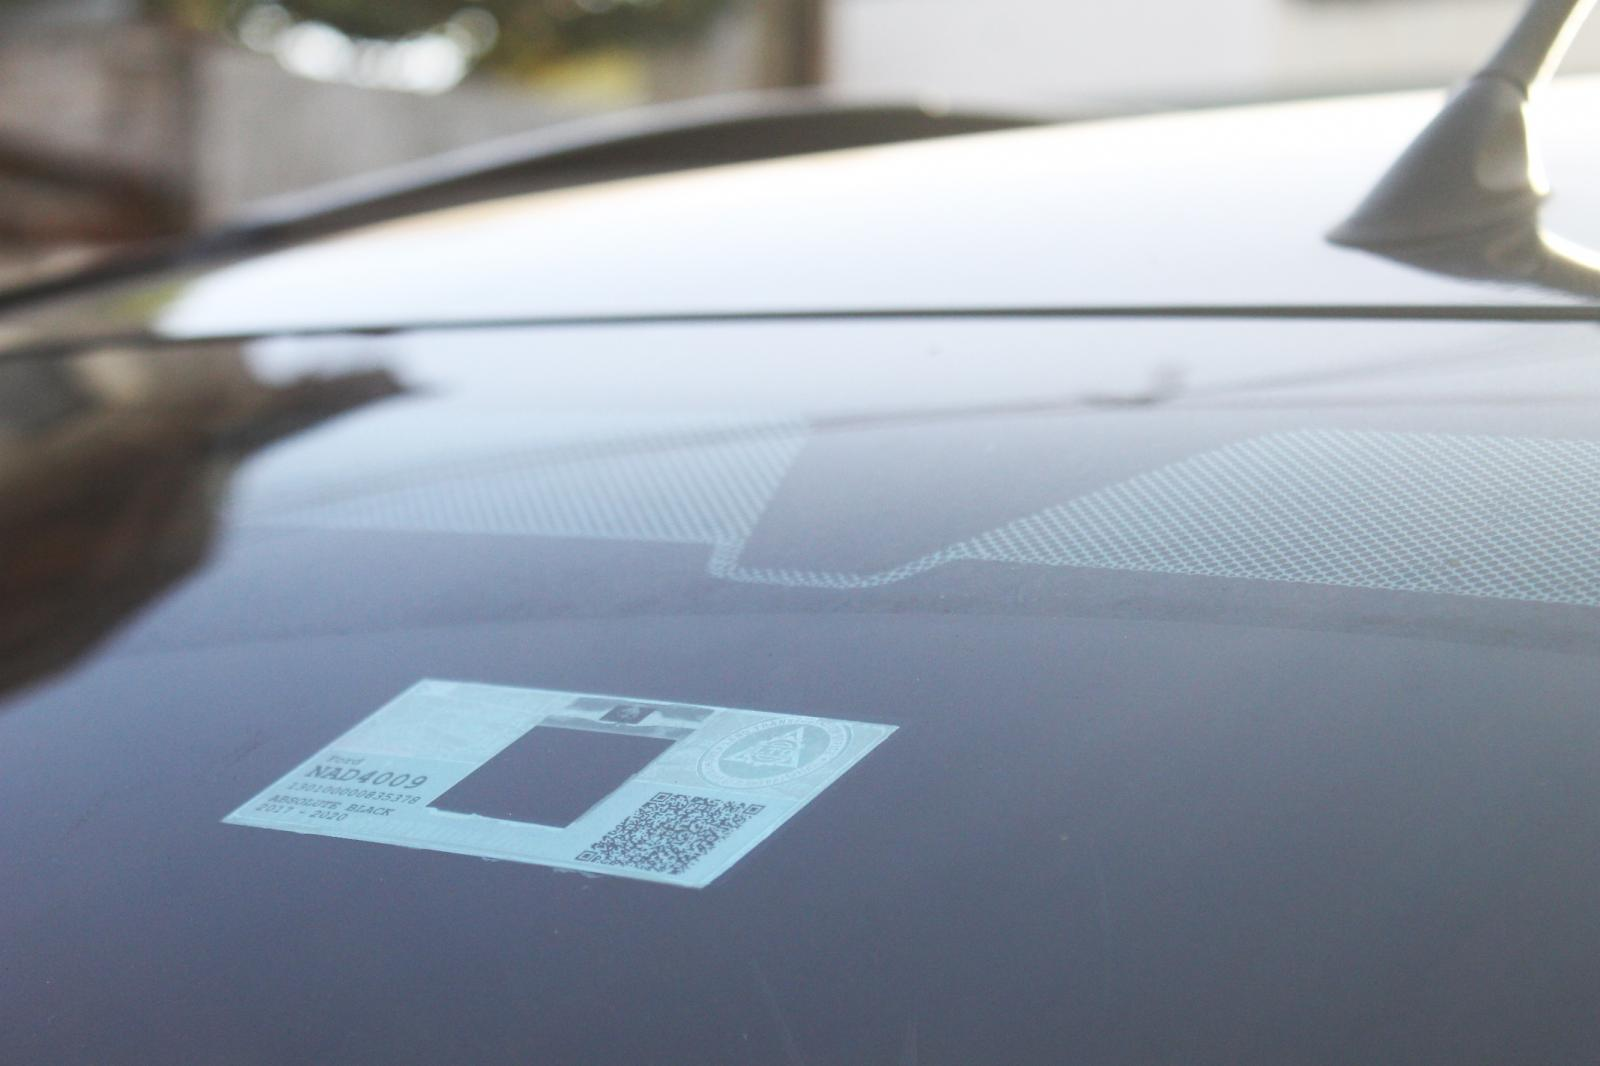 LTO RFID sticker